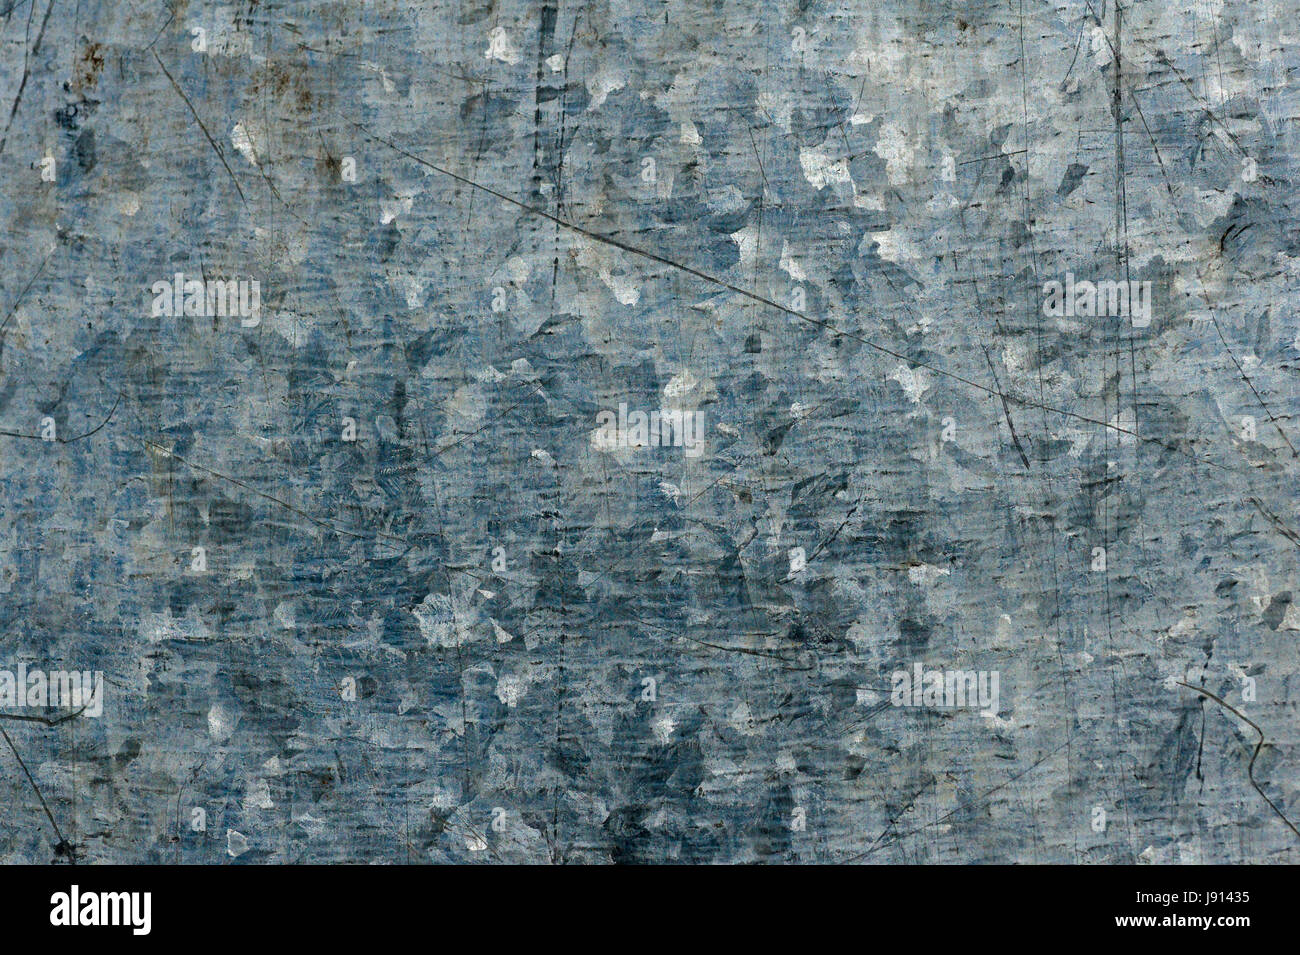 Surface made of galvanized metal. Industrial background. - Stock Image